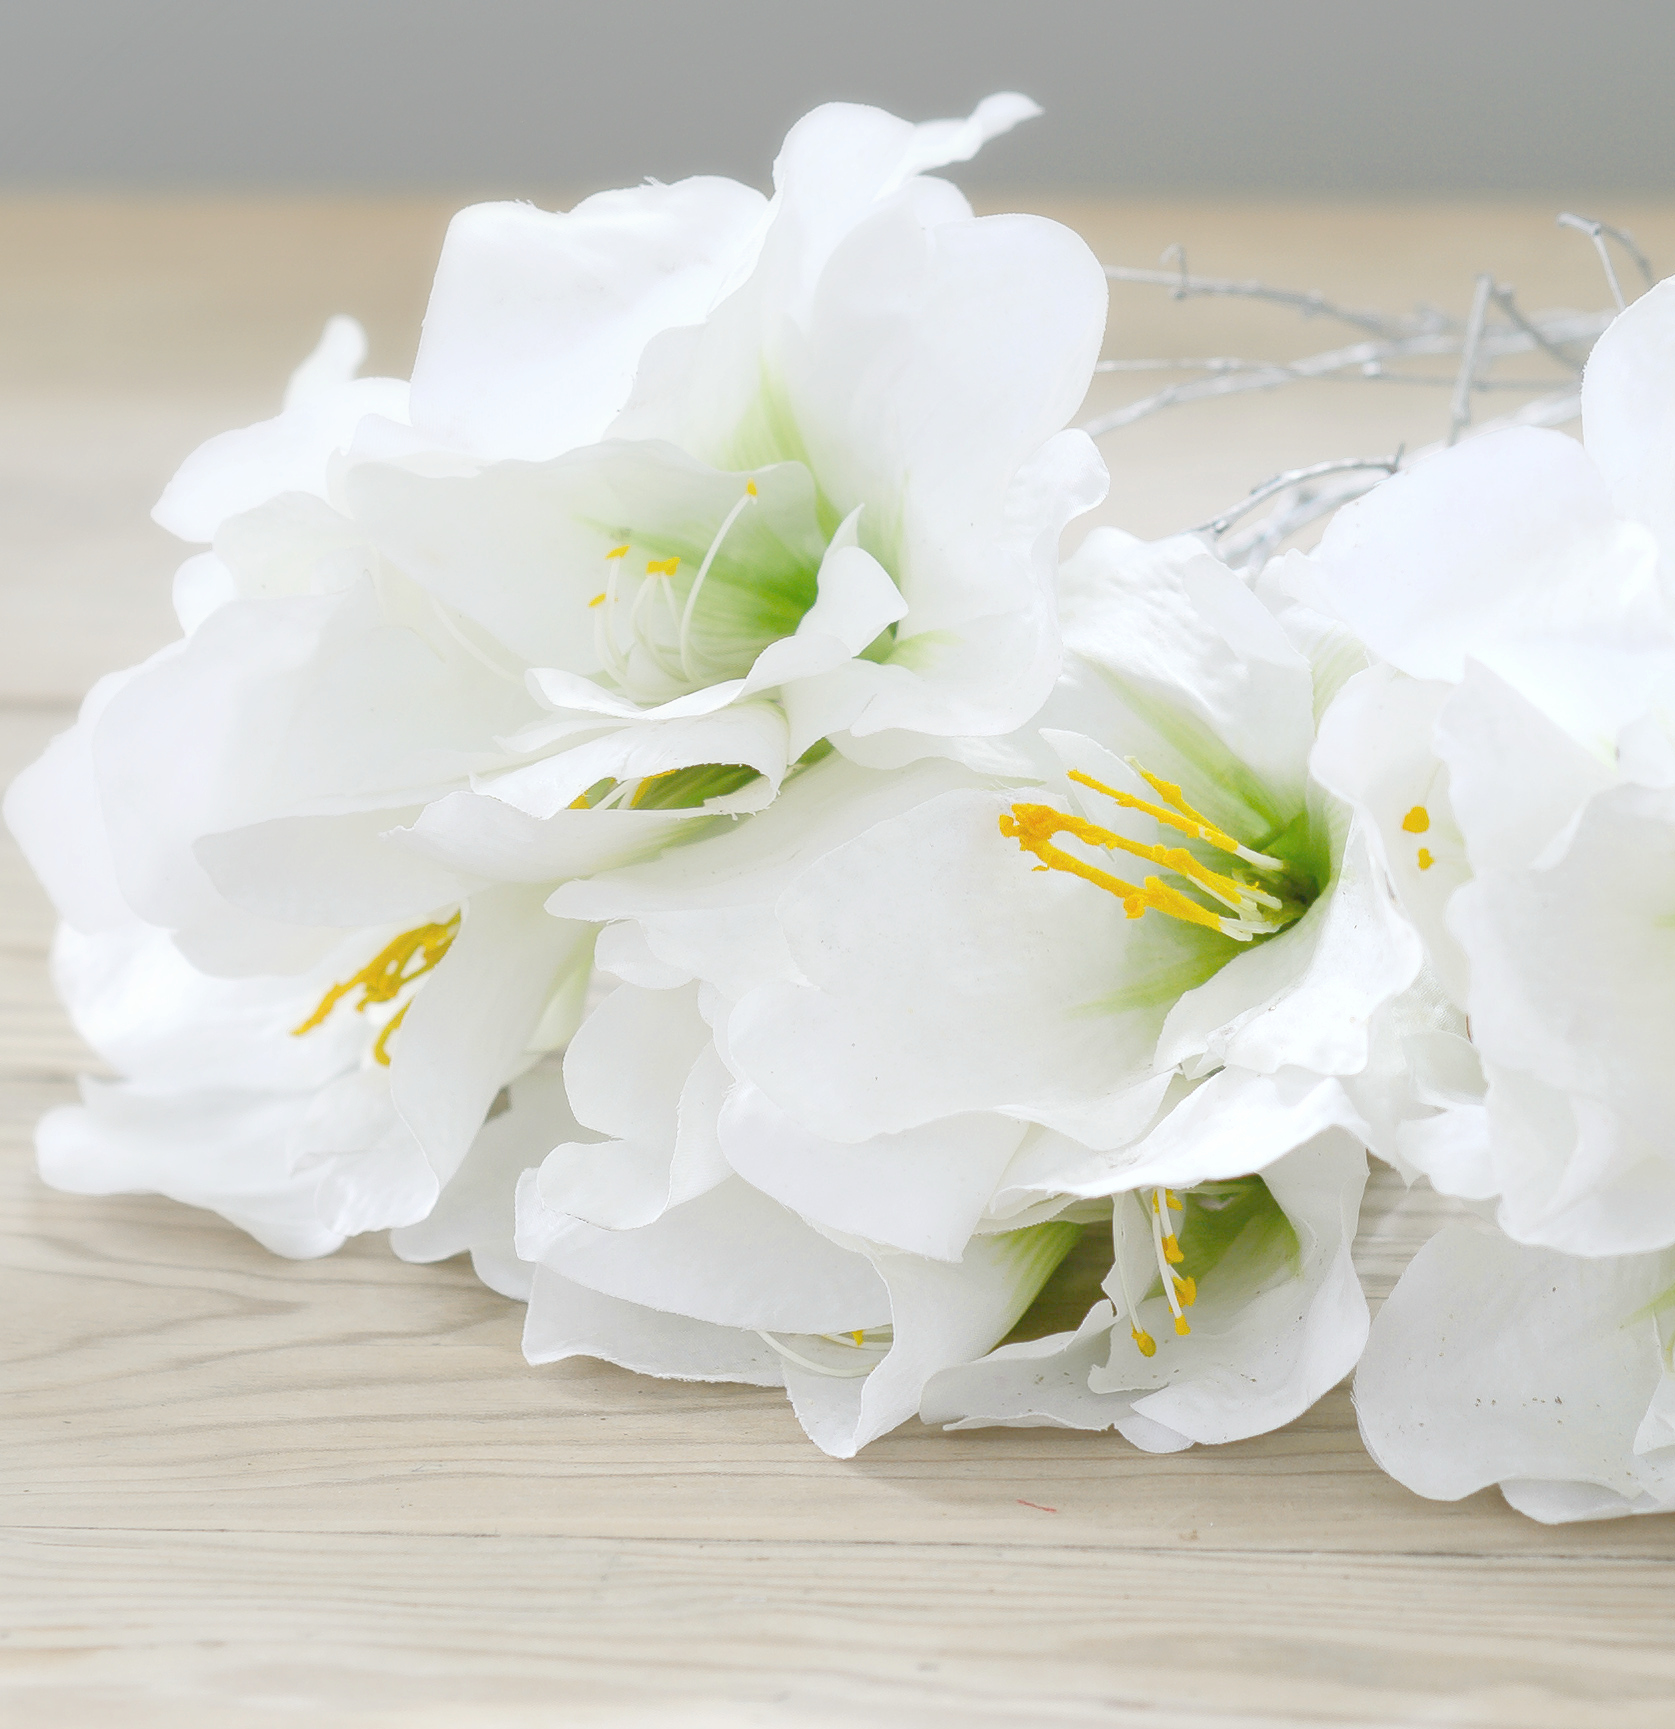 Faux Flower Artificial White Amaryllis Bunch Flower Studio Shop